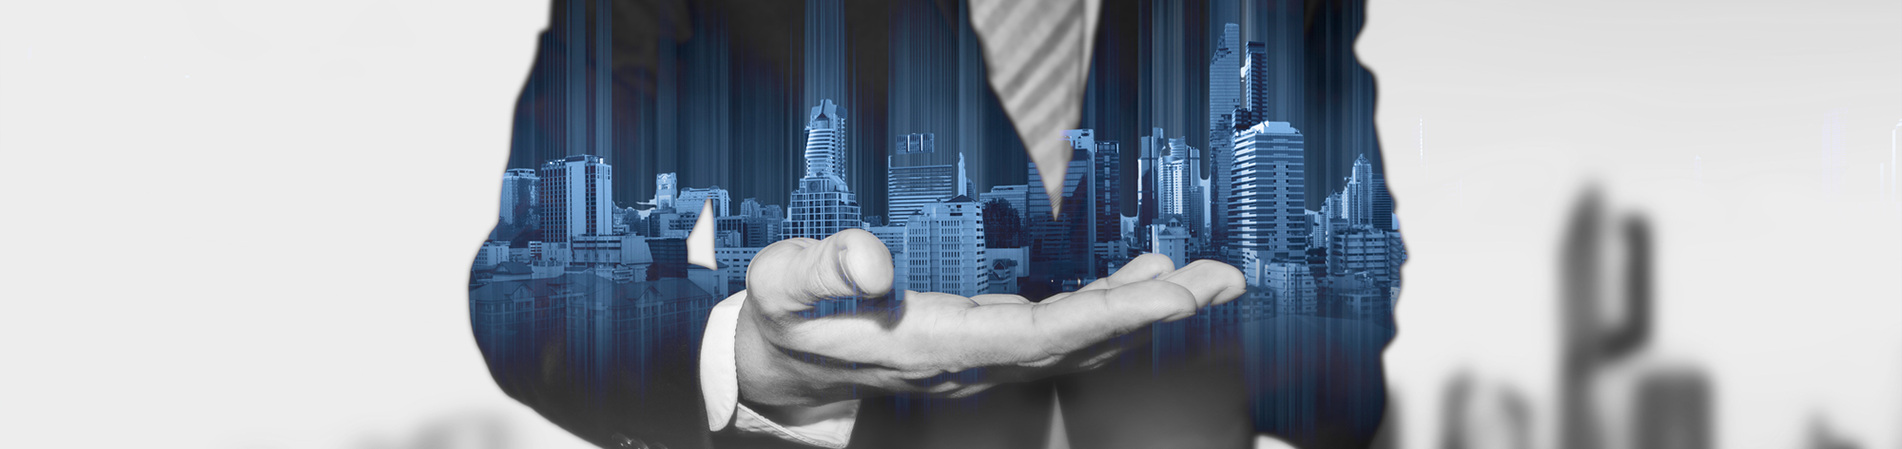 Man with Buildings on Hand Graphic